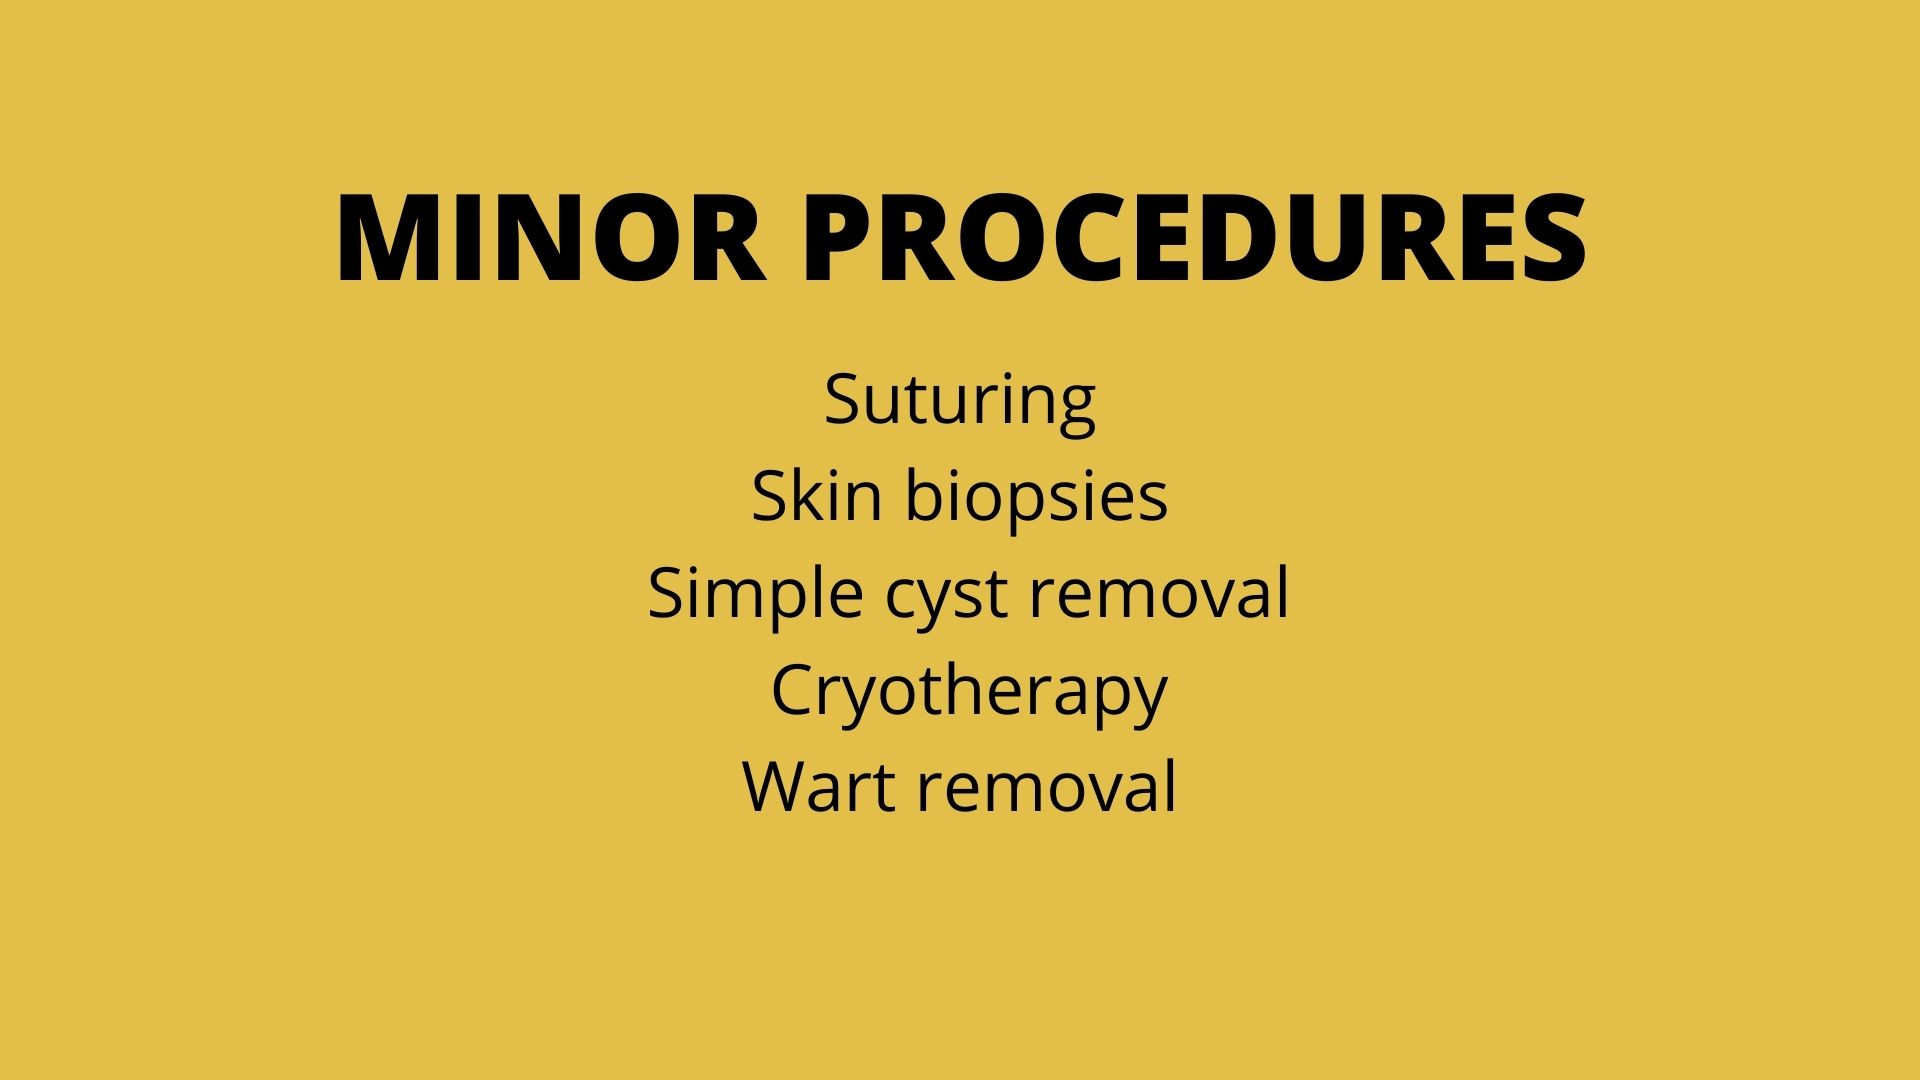 MINOR PROCEDURES (1).jpg